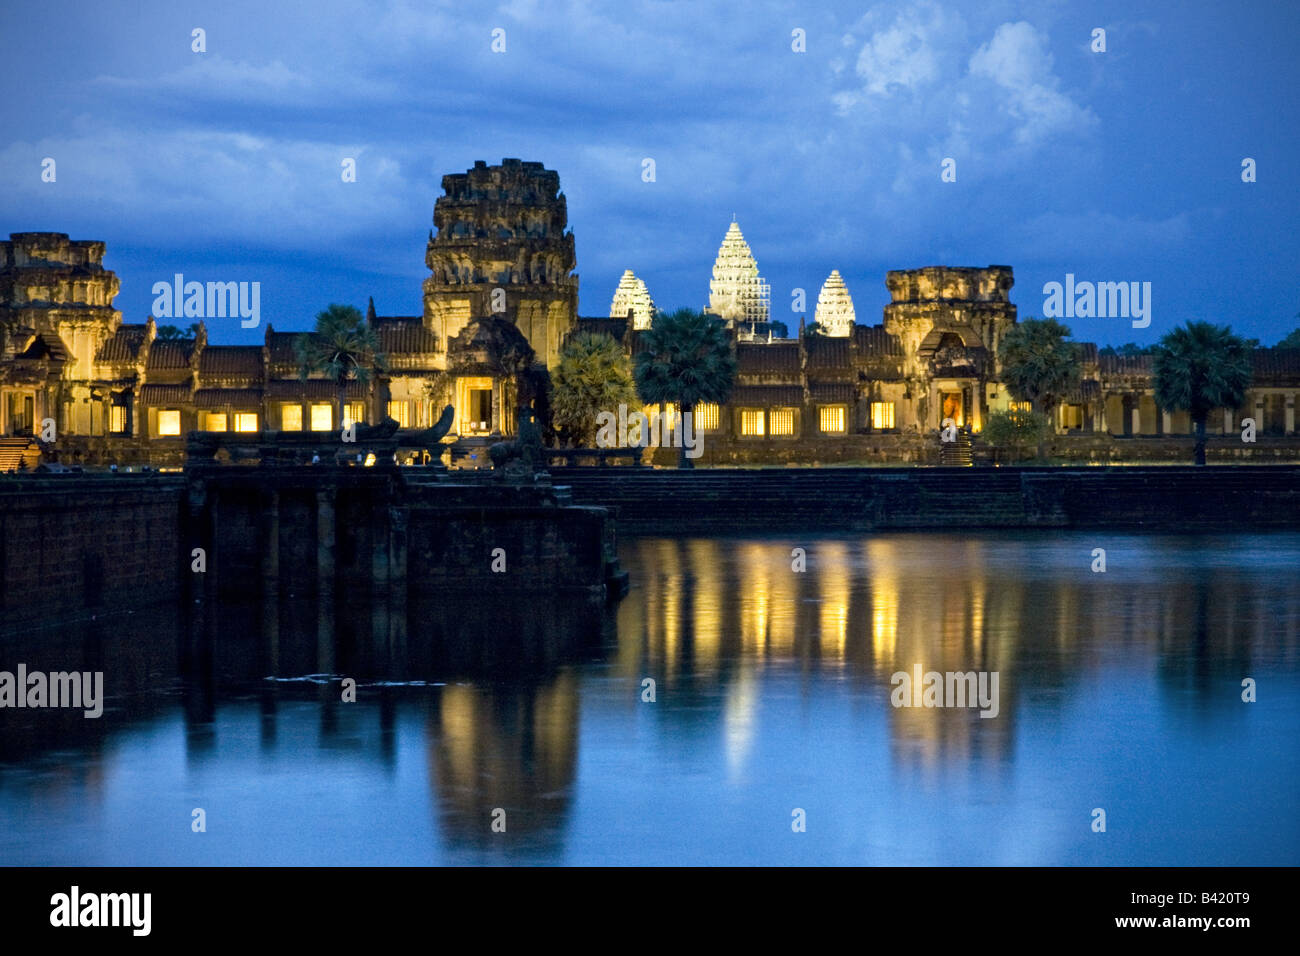 Temple of Angkor wat Cambodia - Stock Image